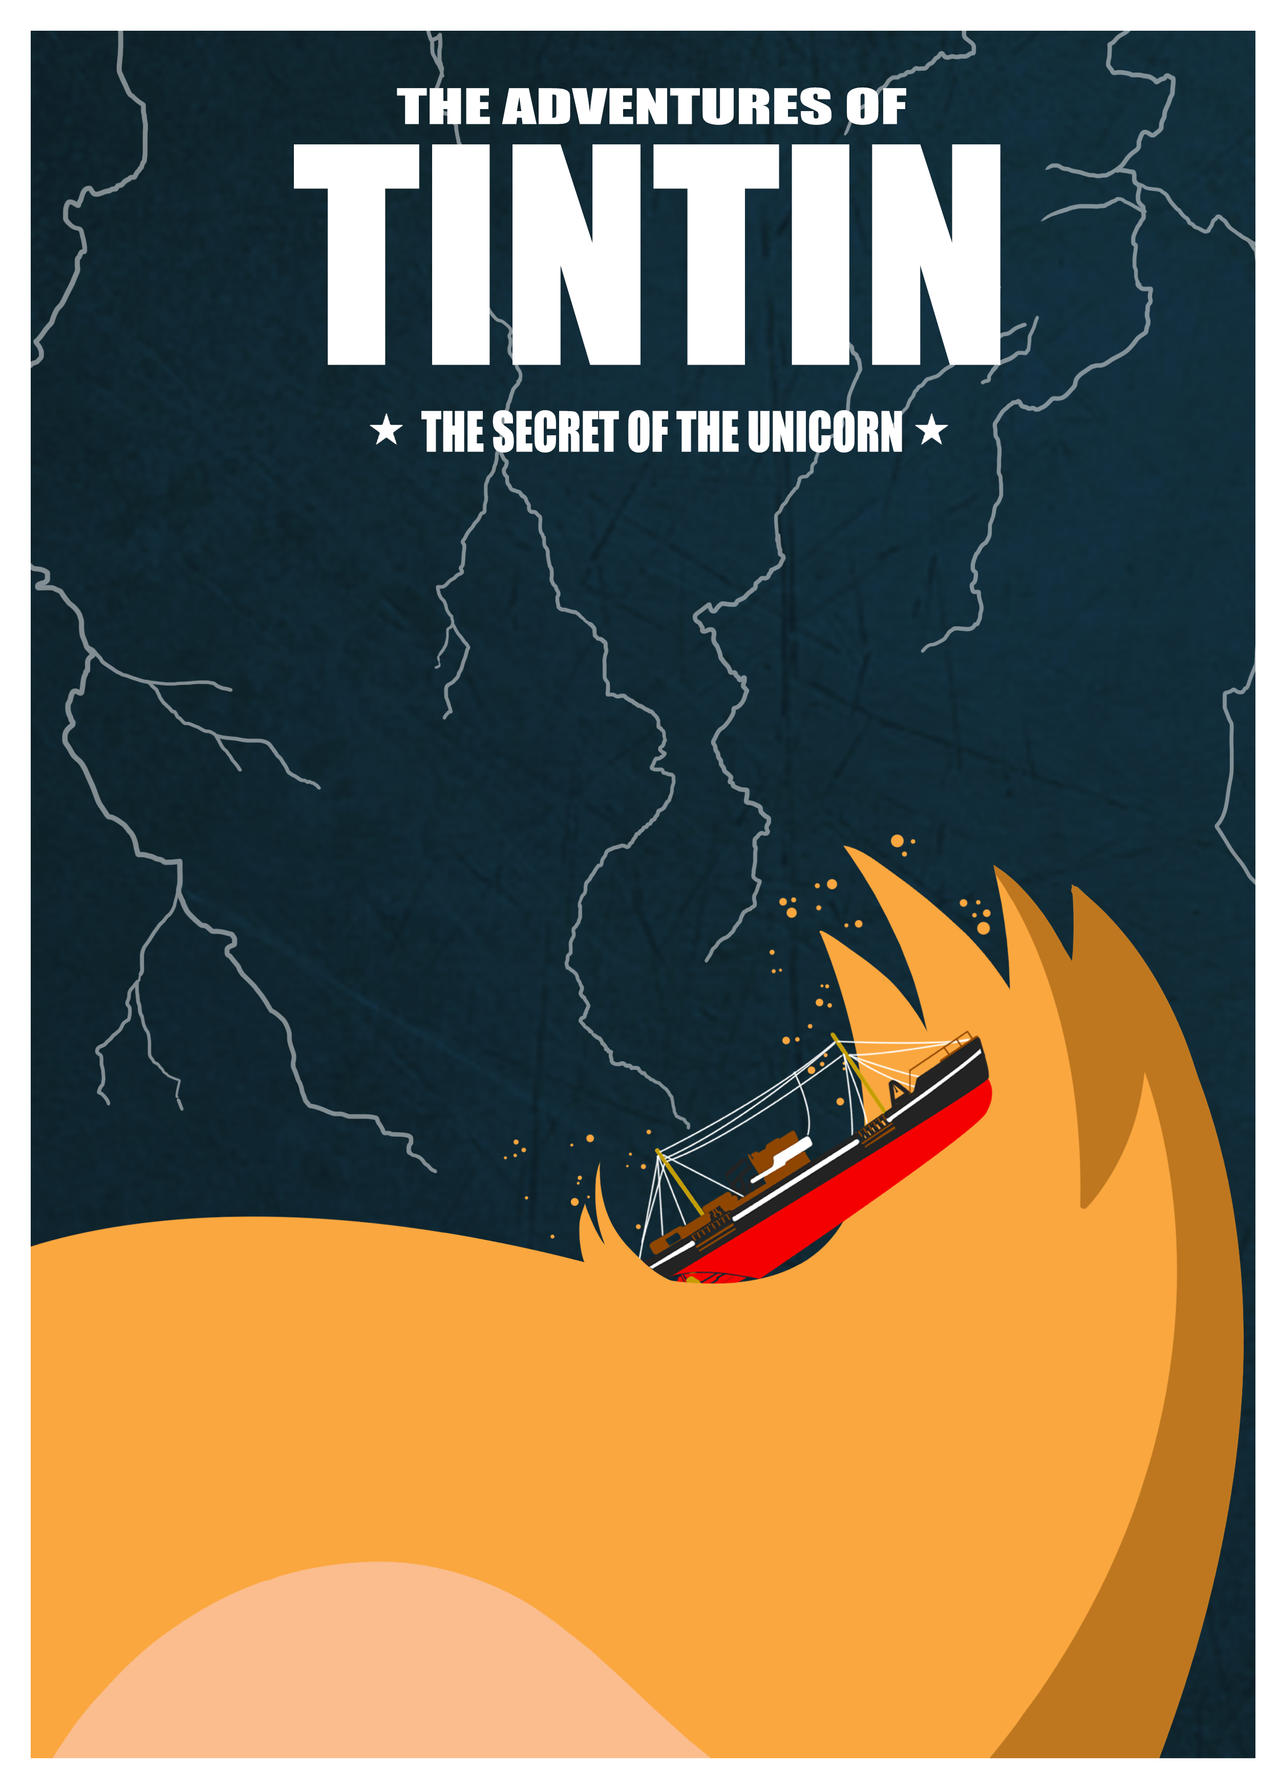 The Adventures of Tintin Minimalist Poster by saigo21 on ...